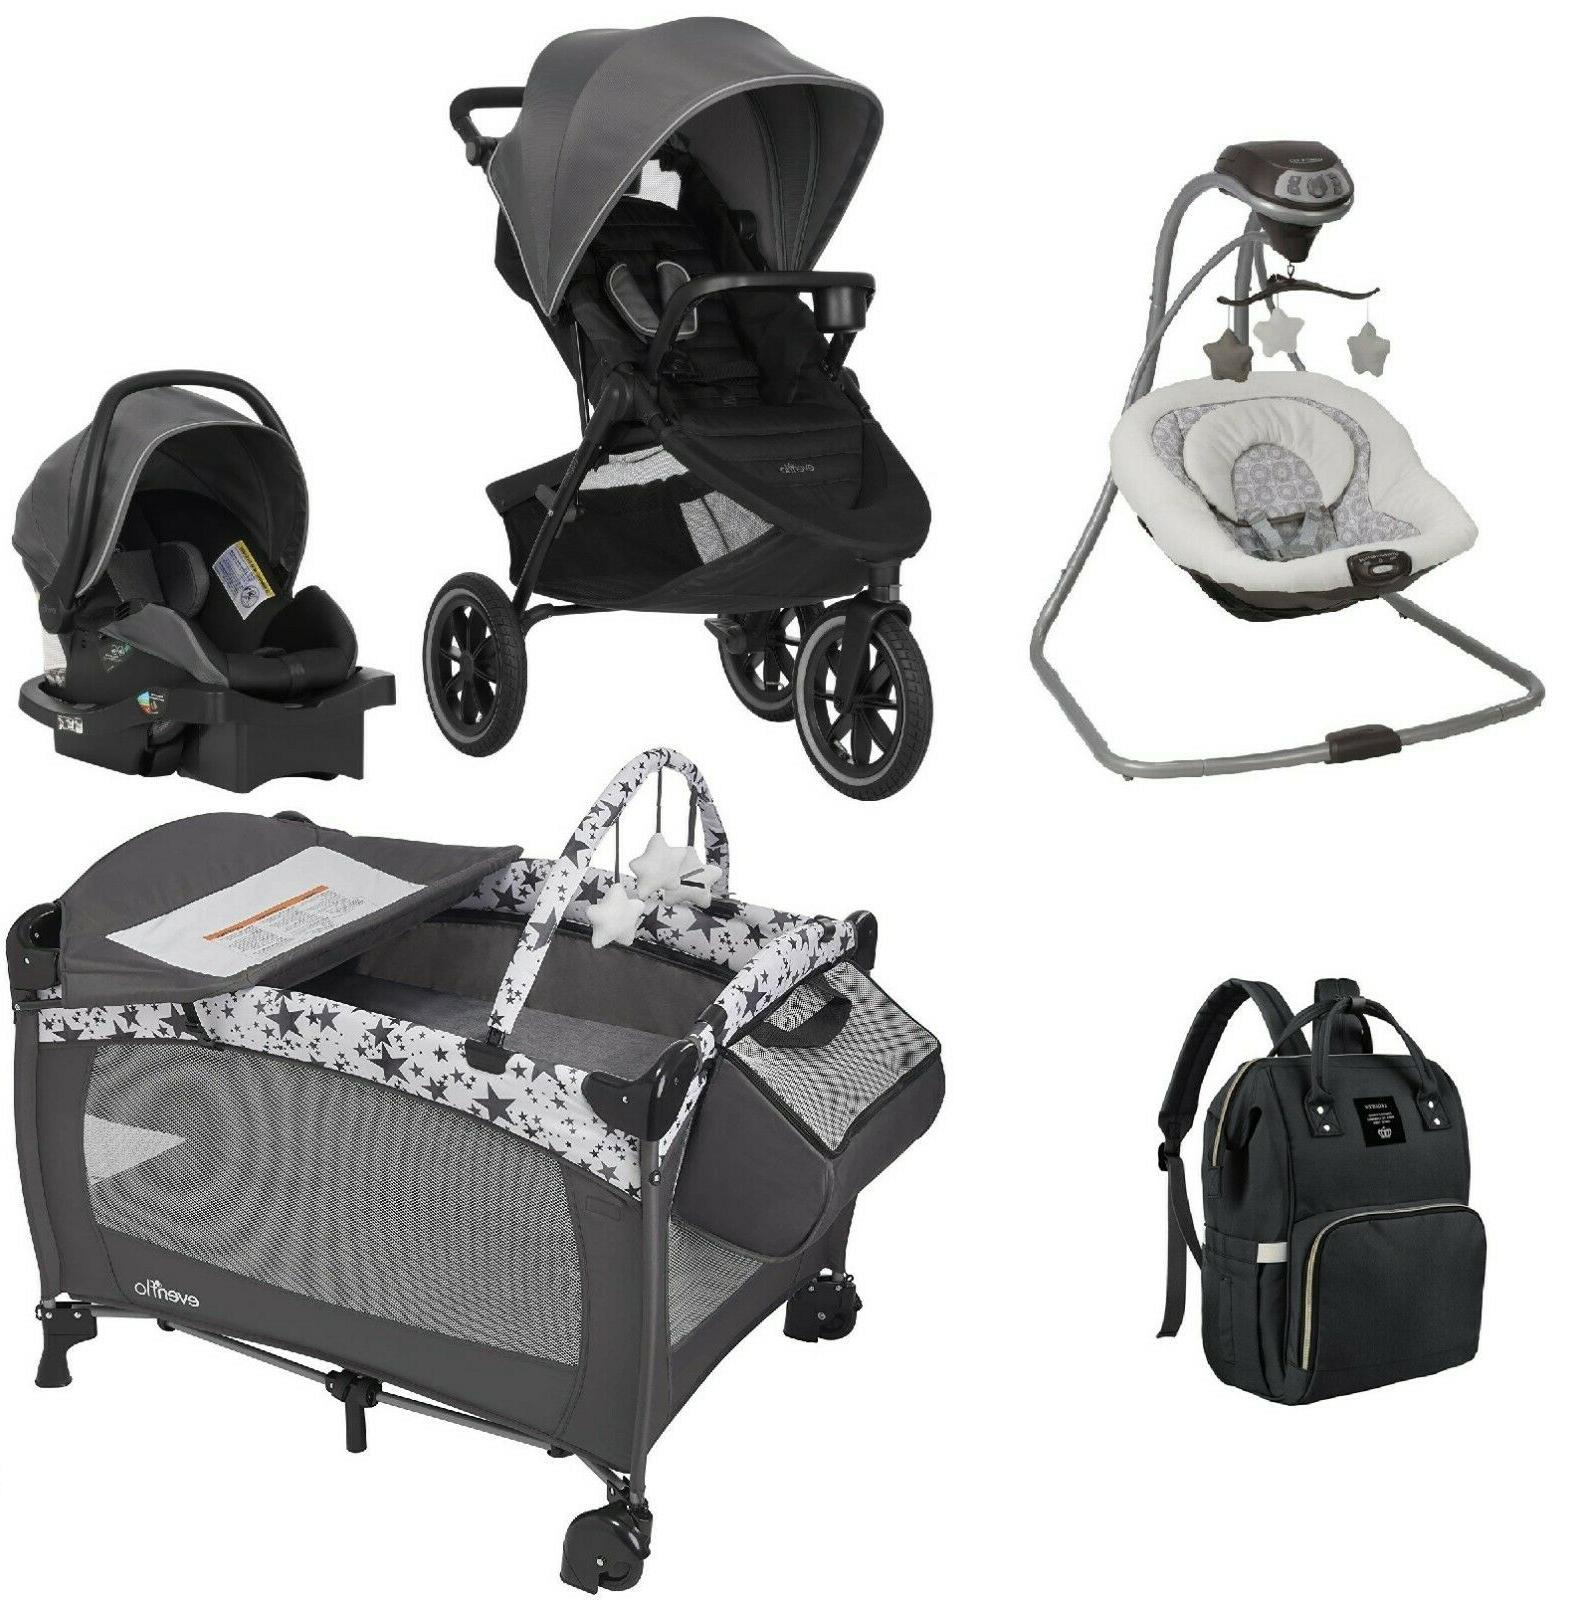 Evenflo Jogger Stroller with Car Seat Baby Swing Playard Dia